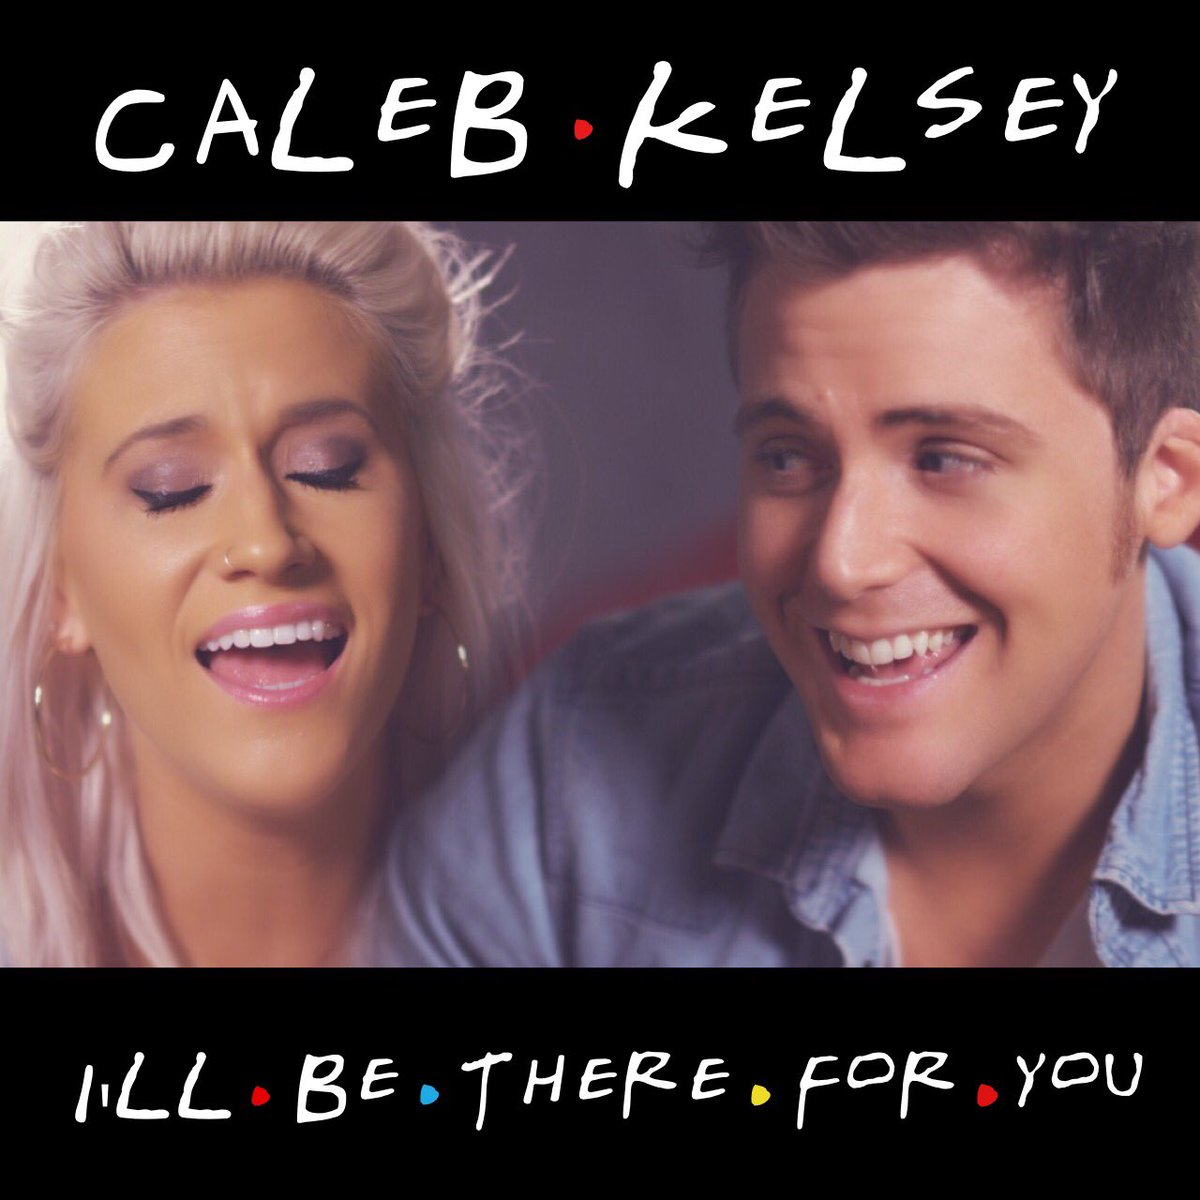 CALEB GRIMM - CALEB AND KELSEY GOSPEL SONG…MIGHTY TO SAVE